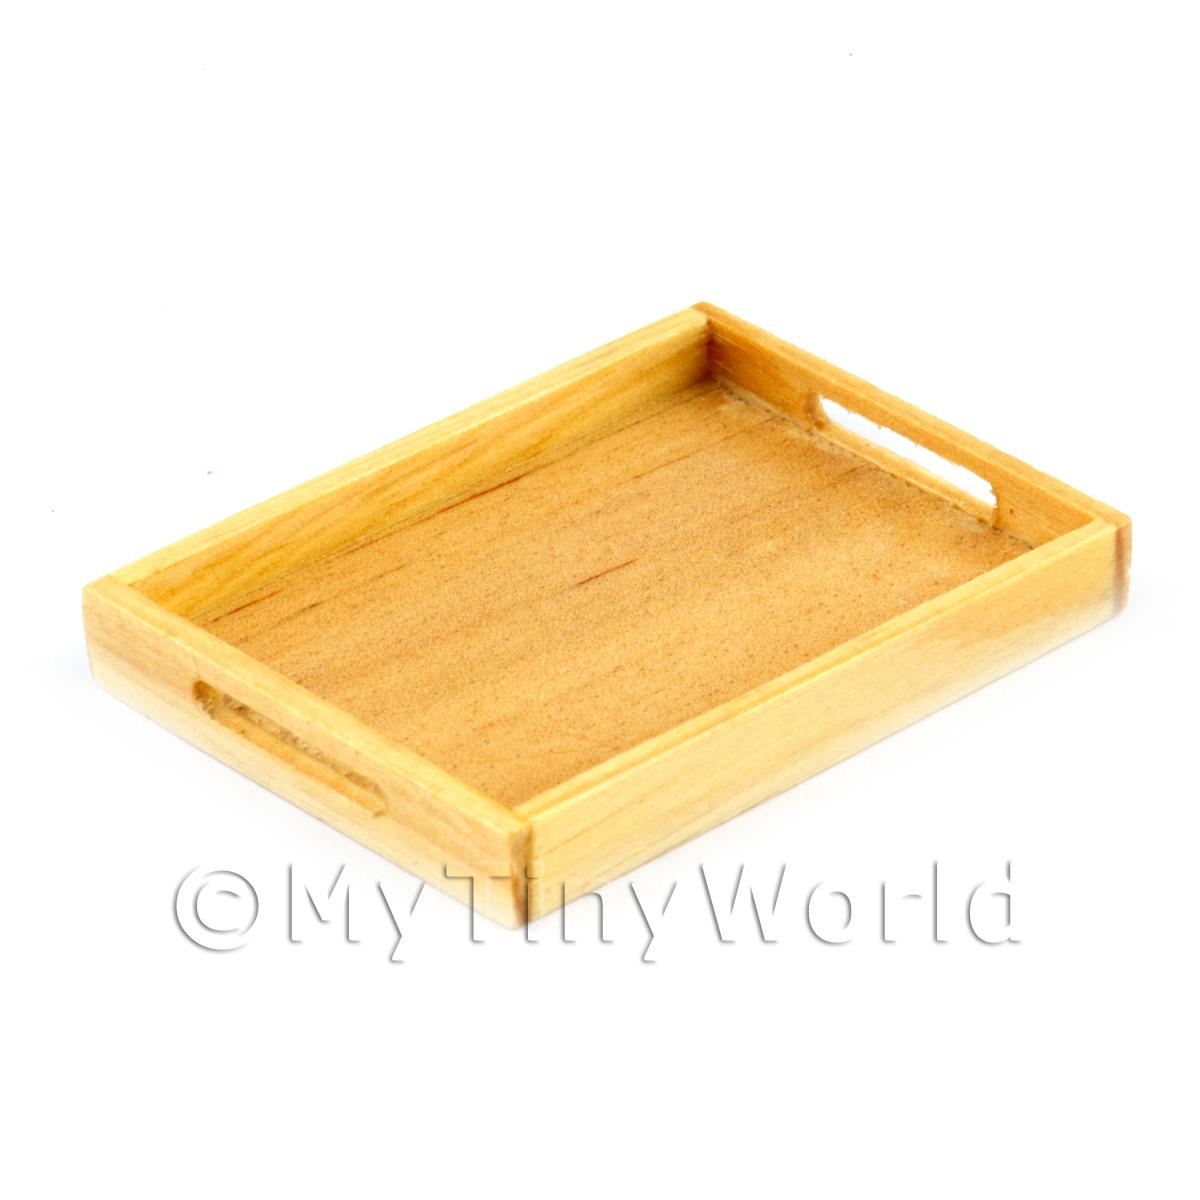 Dolls House Miniature Handmade Wooden Bakers Tray With Handles